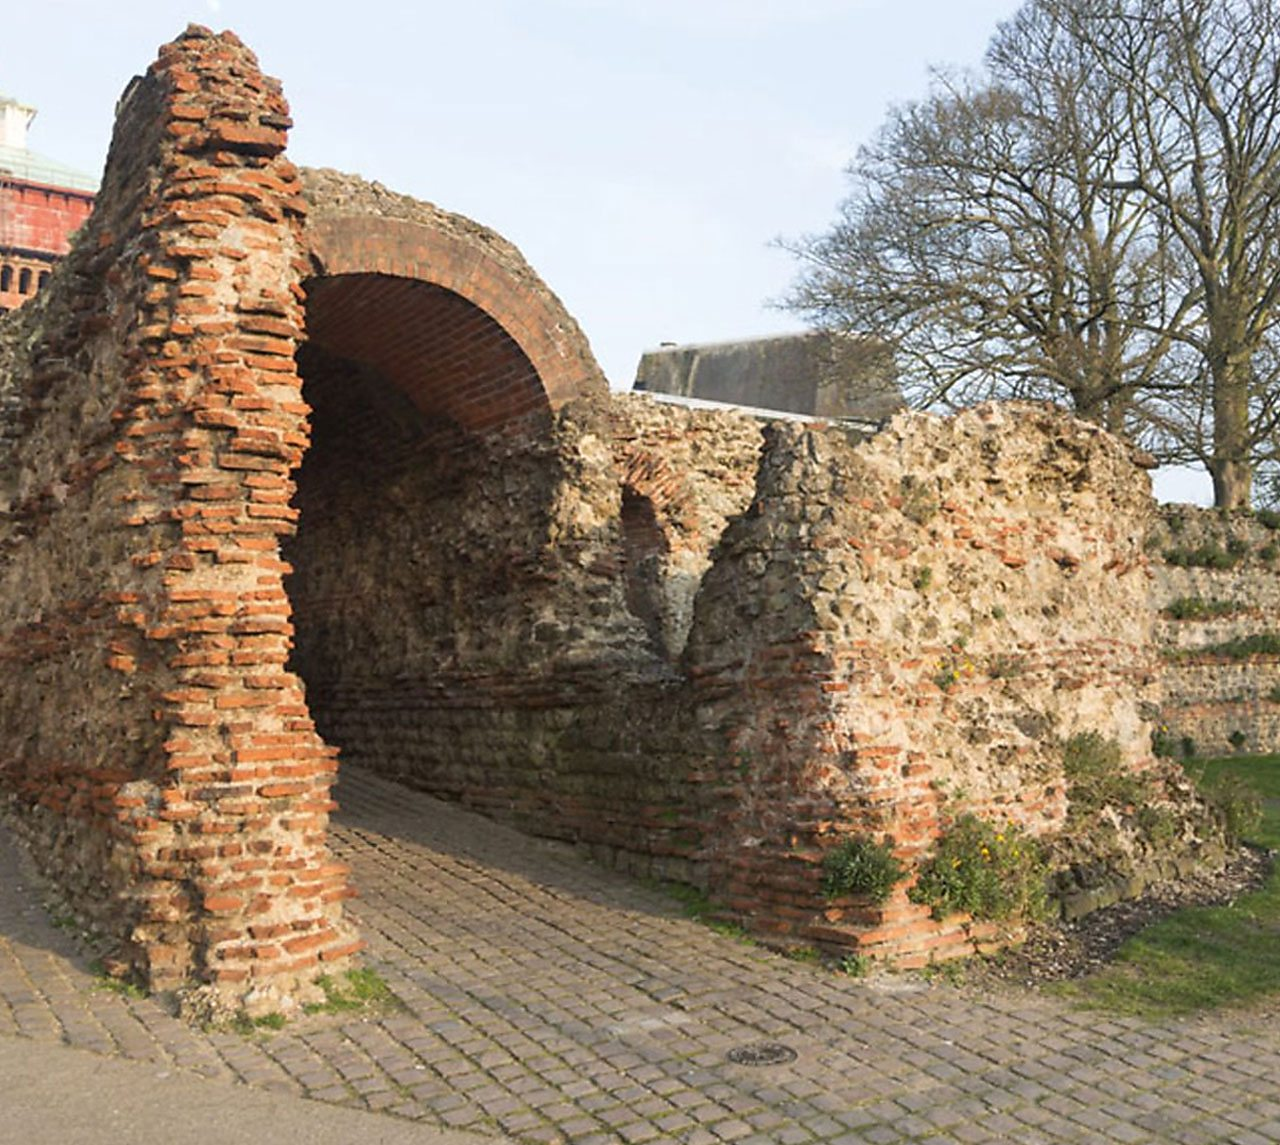 A Roman archway in Colchester.